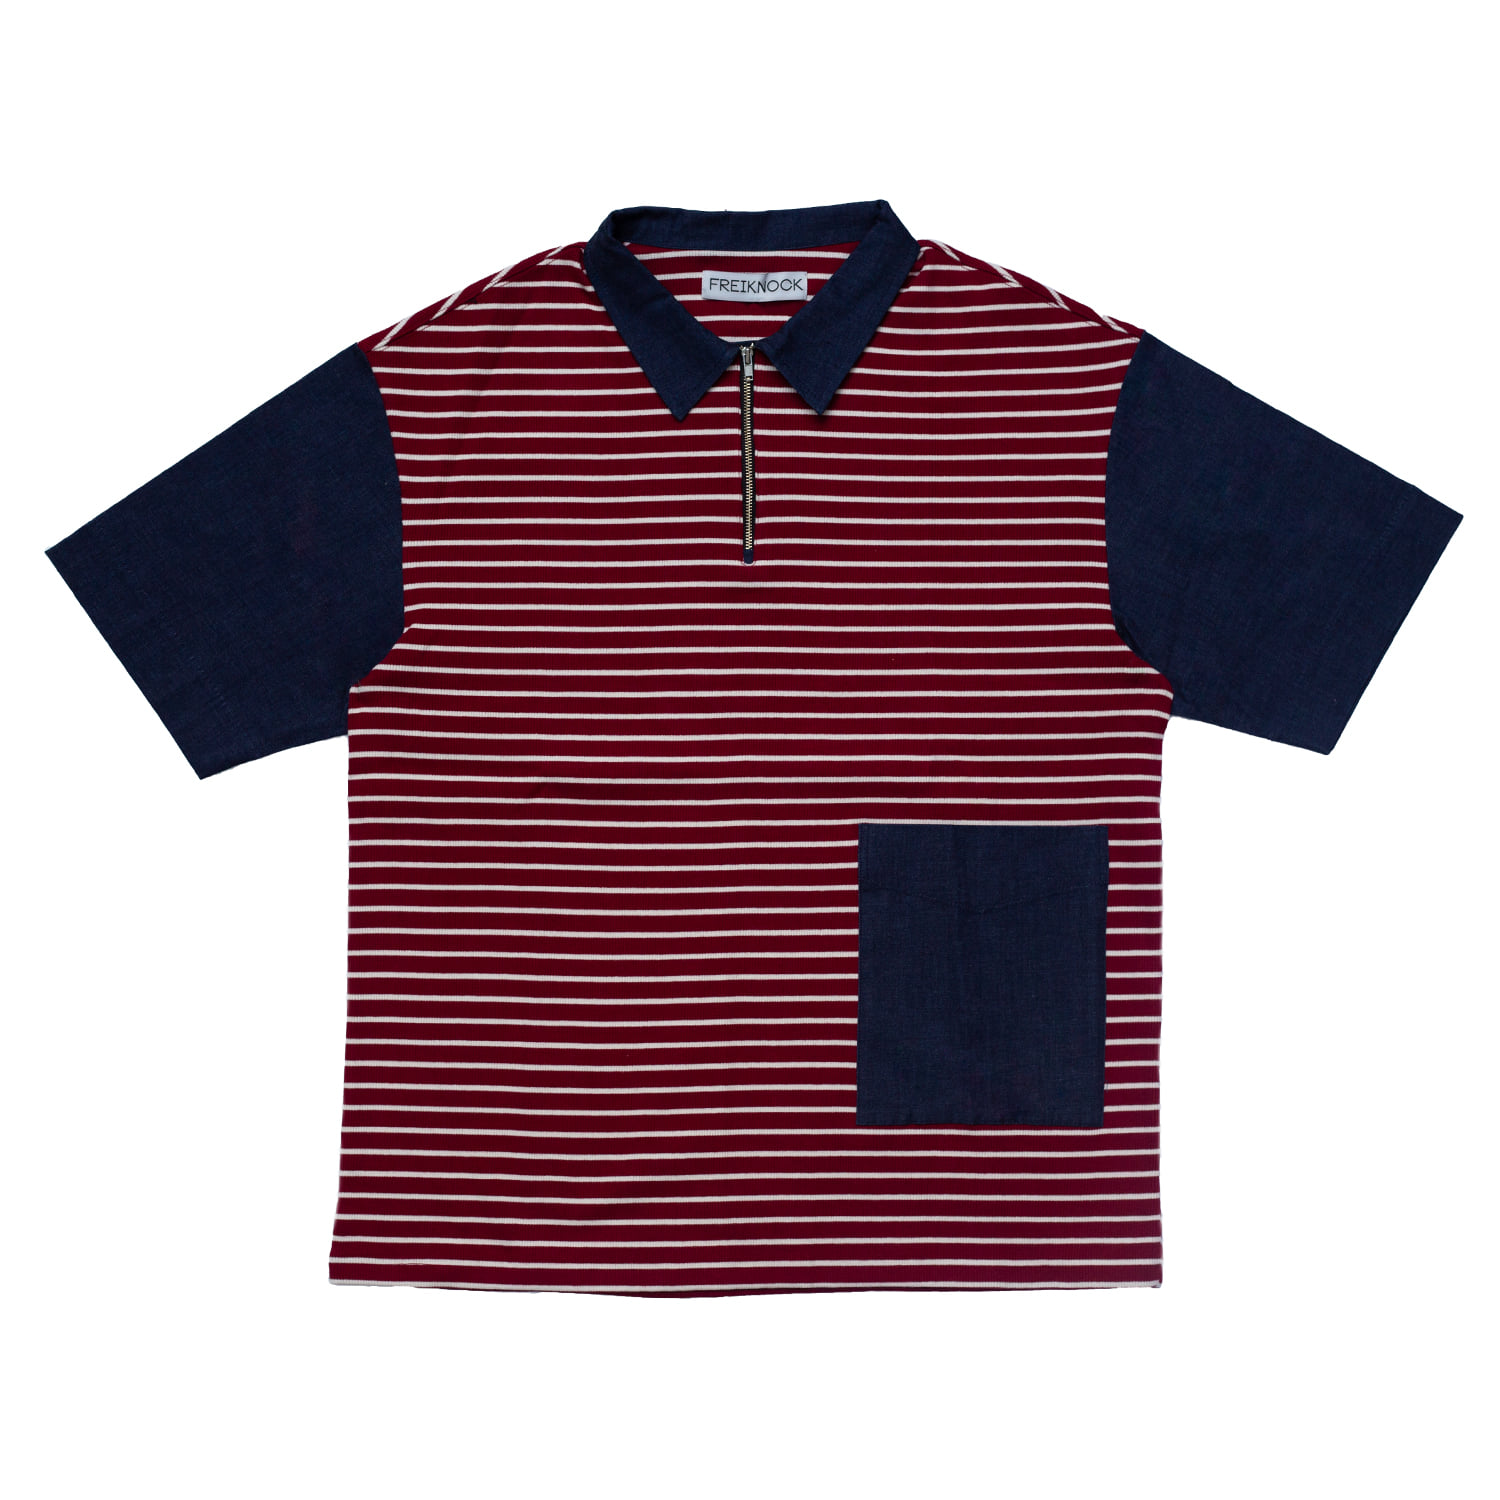 [90% OFF]DENIM & STRIPE JERSEY COMBO SHIRT(BURGUNDY)